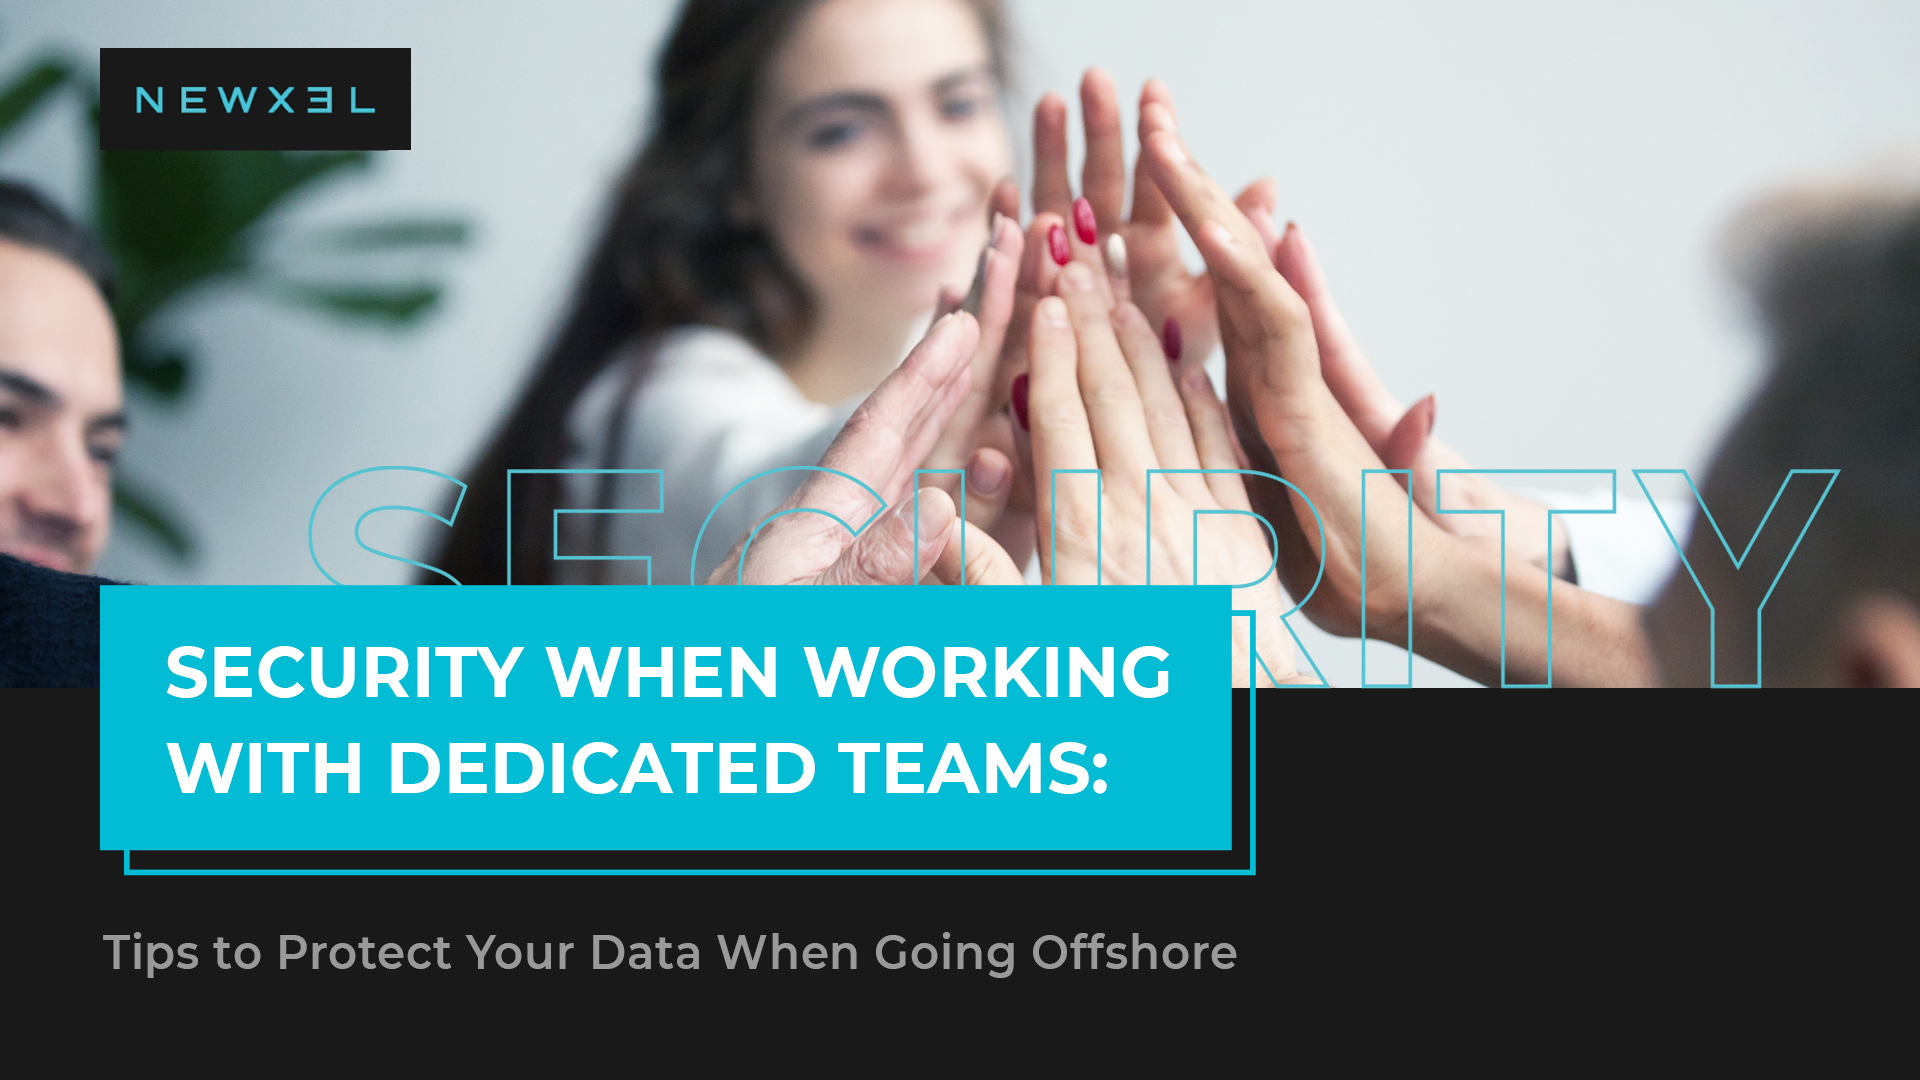 Cybersecurity With Dedicated Teams